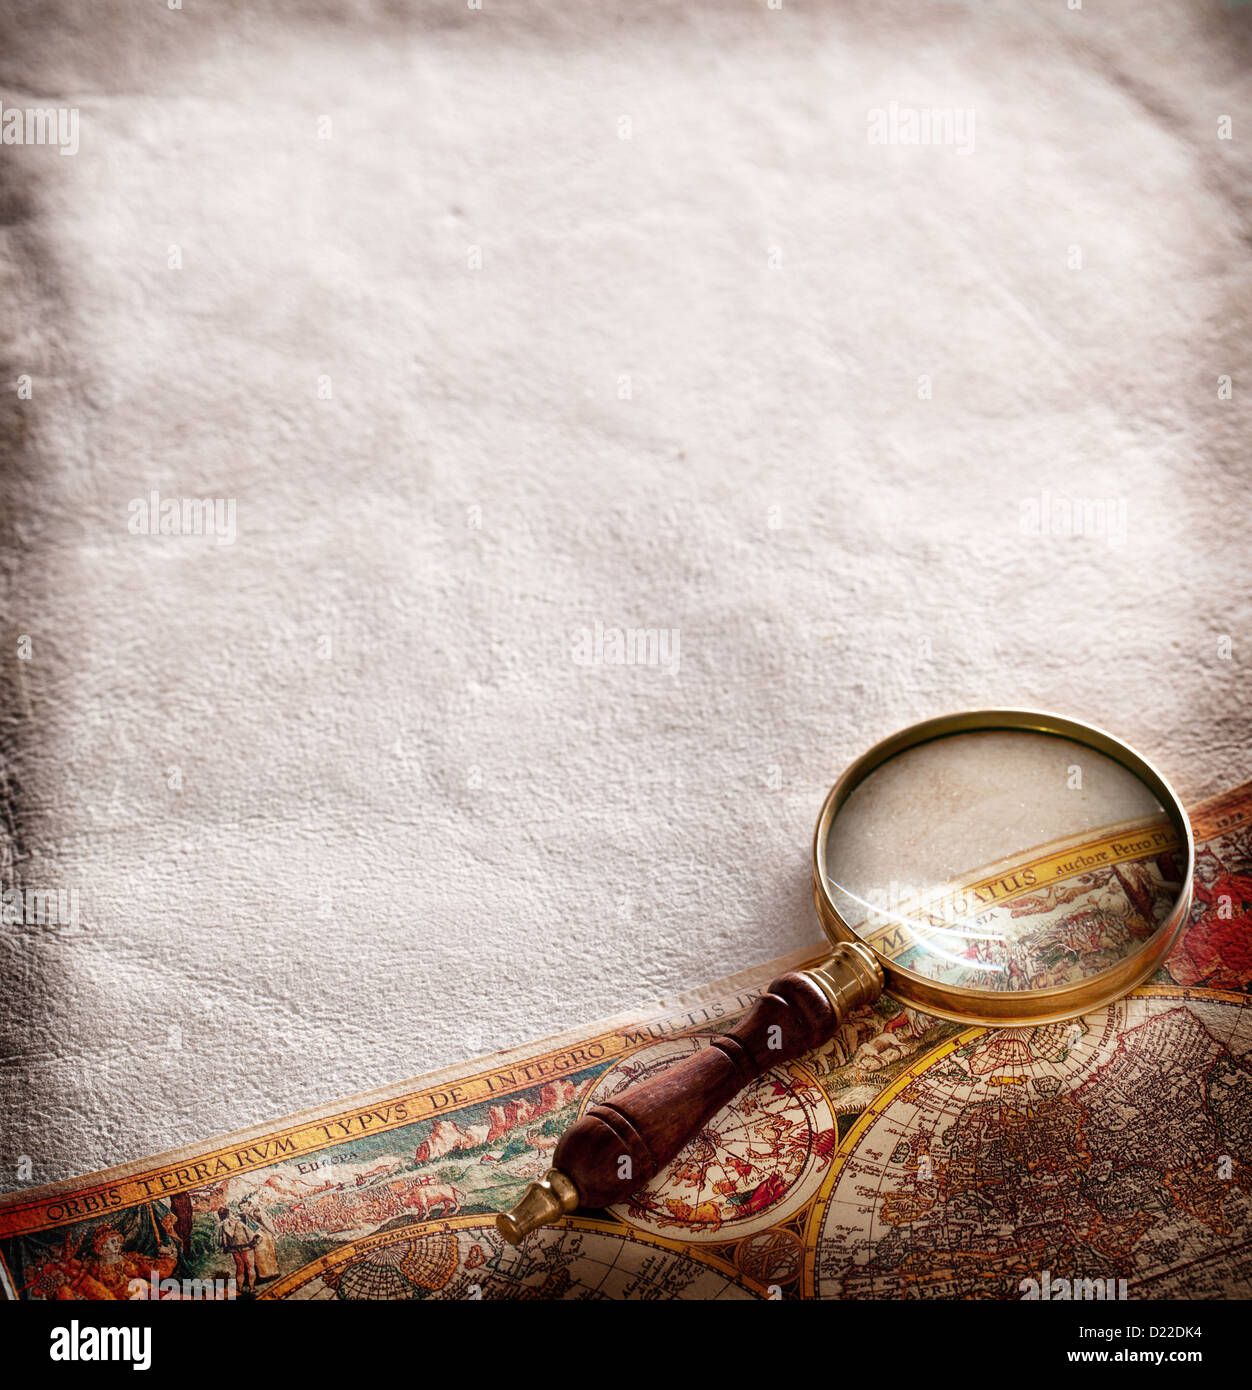 Magnifying glass on old parchment. - Stock Image